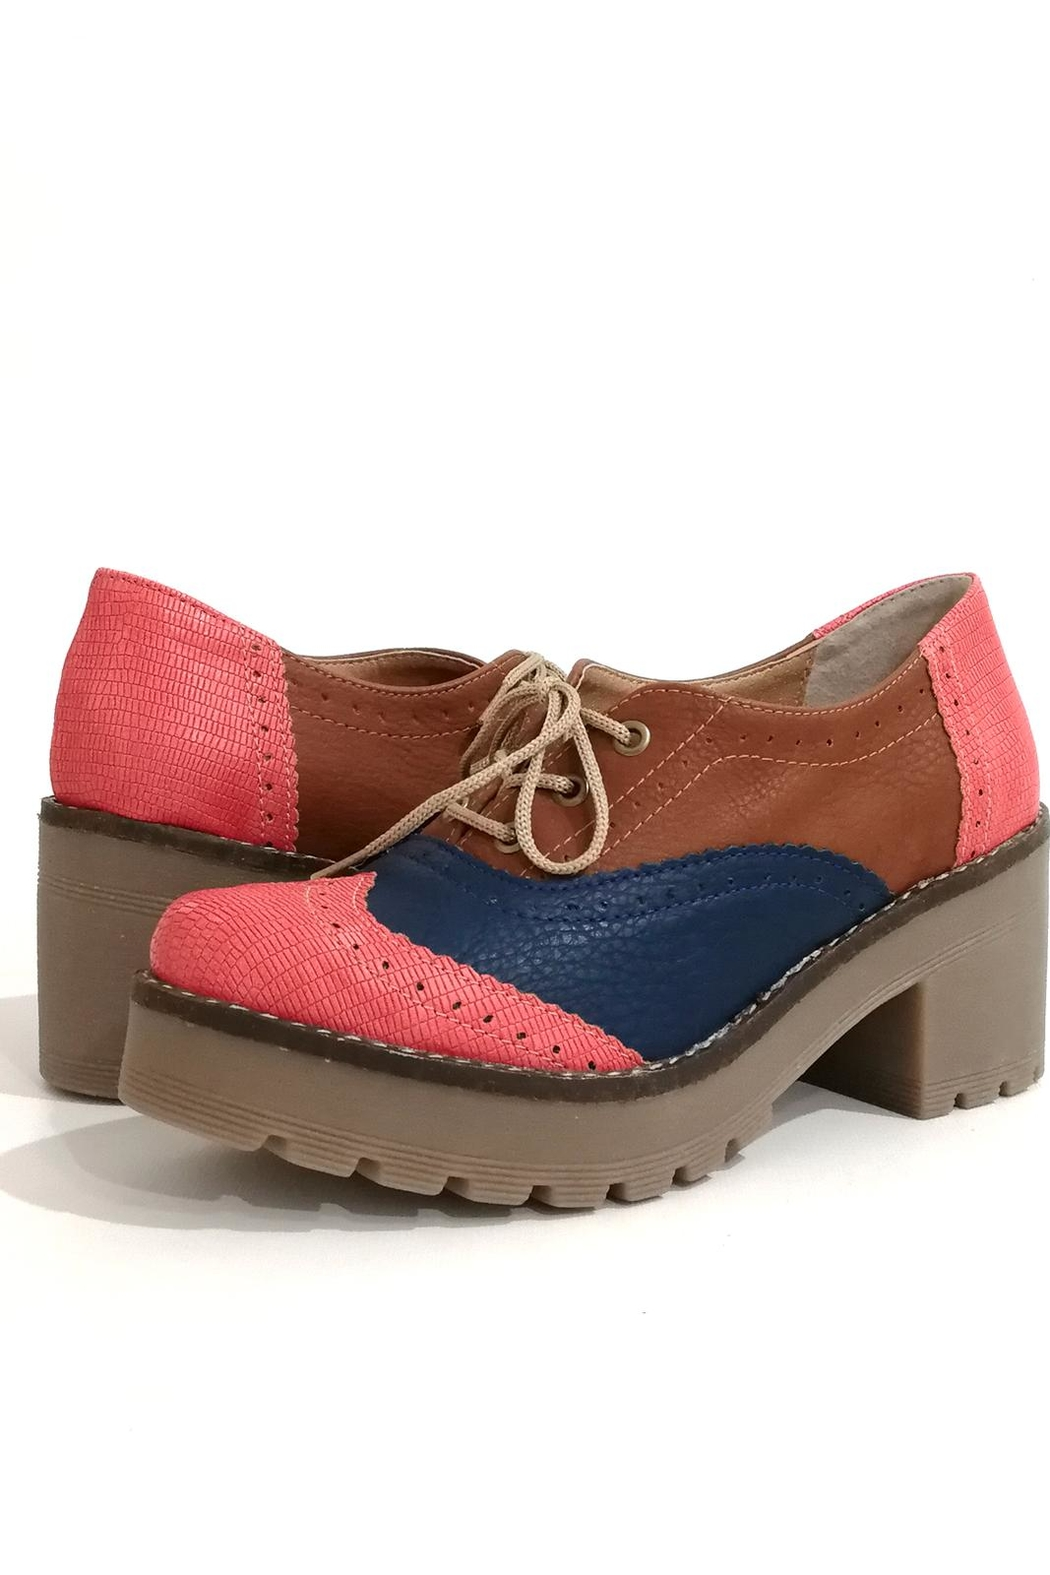 MIYE COLLAZZO Hope Pink Shoes - Side Cropped Image